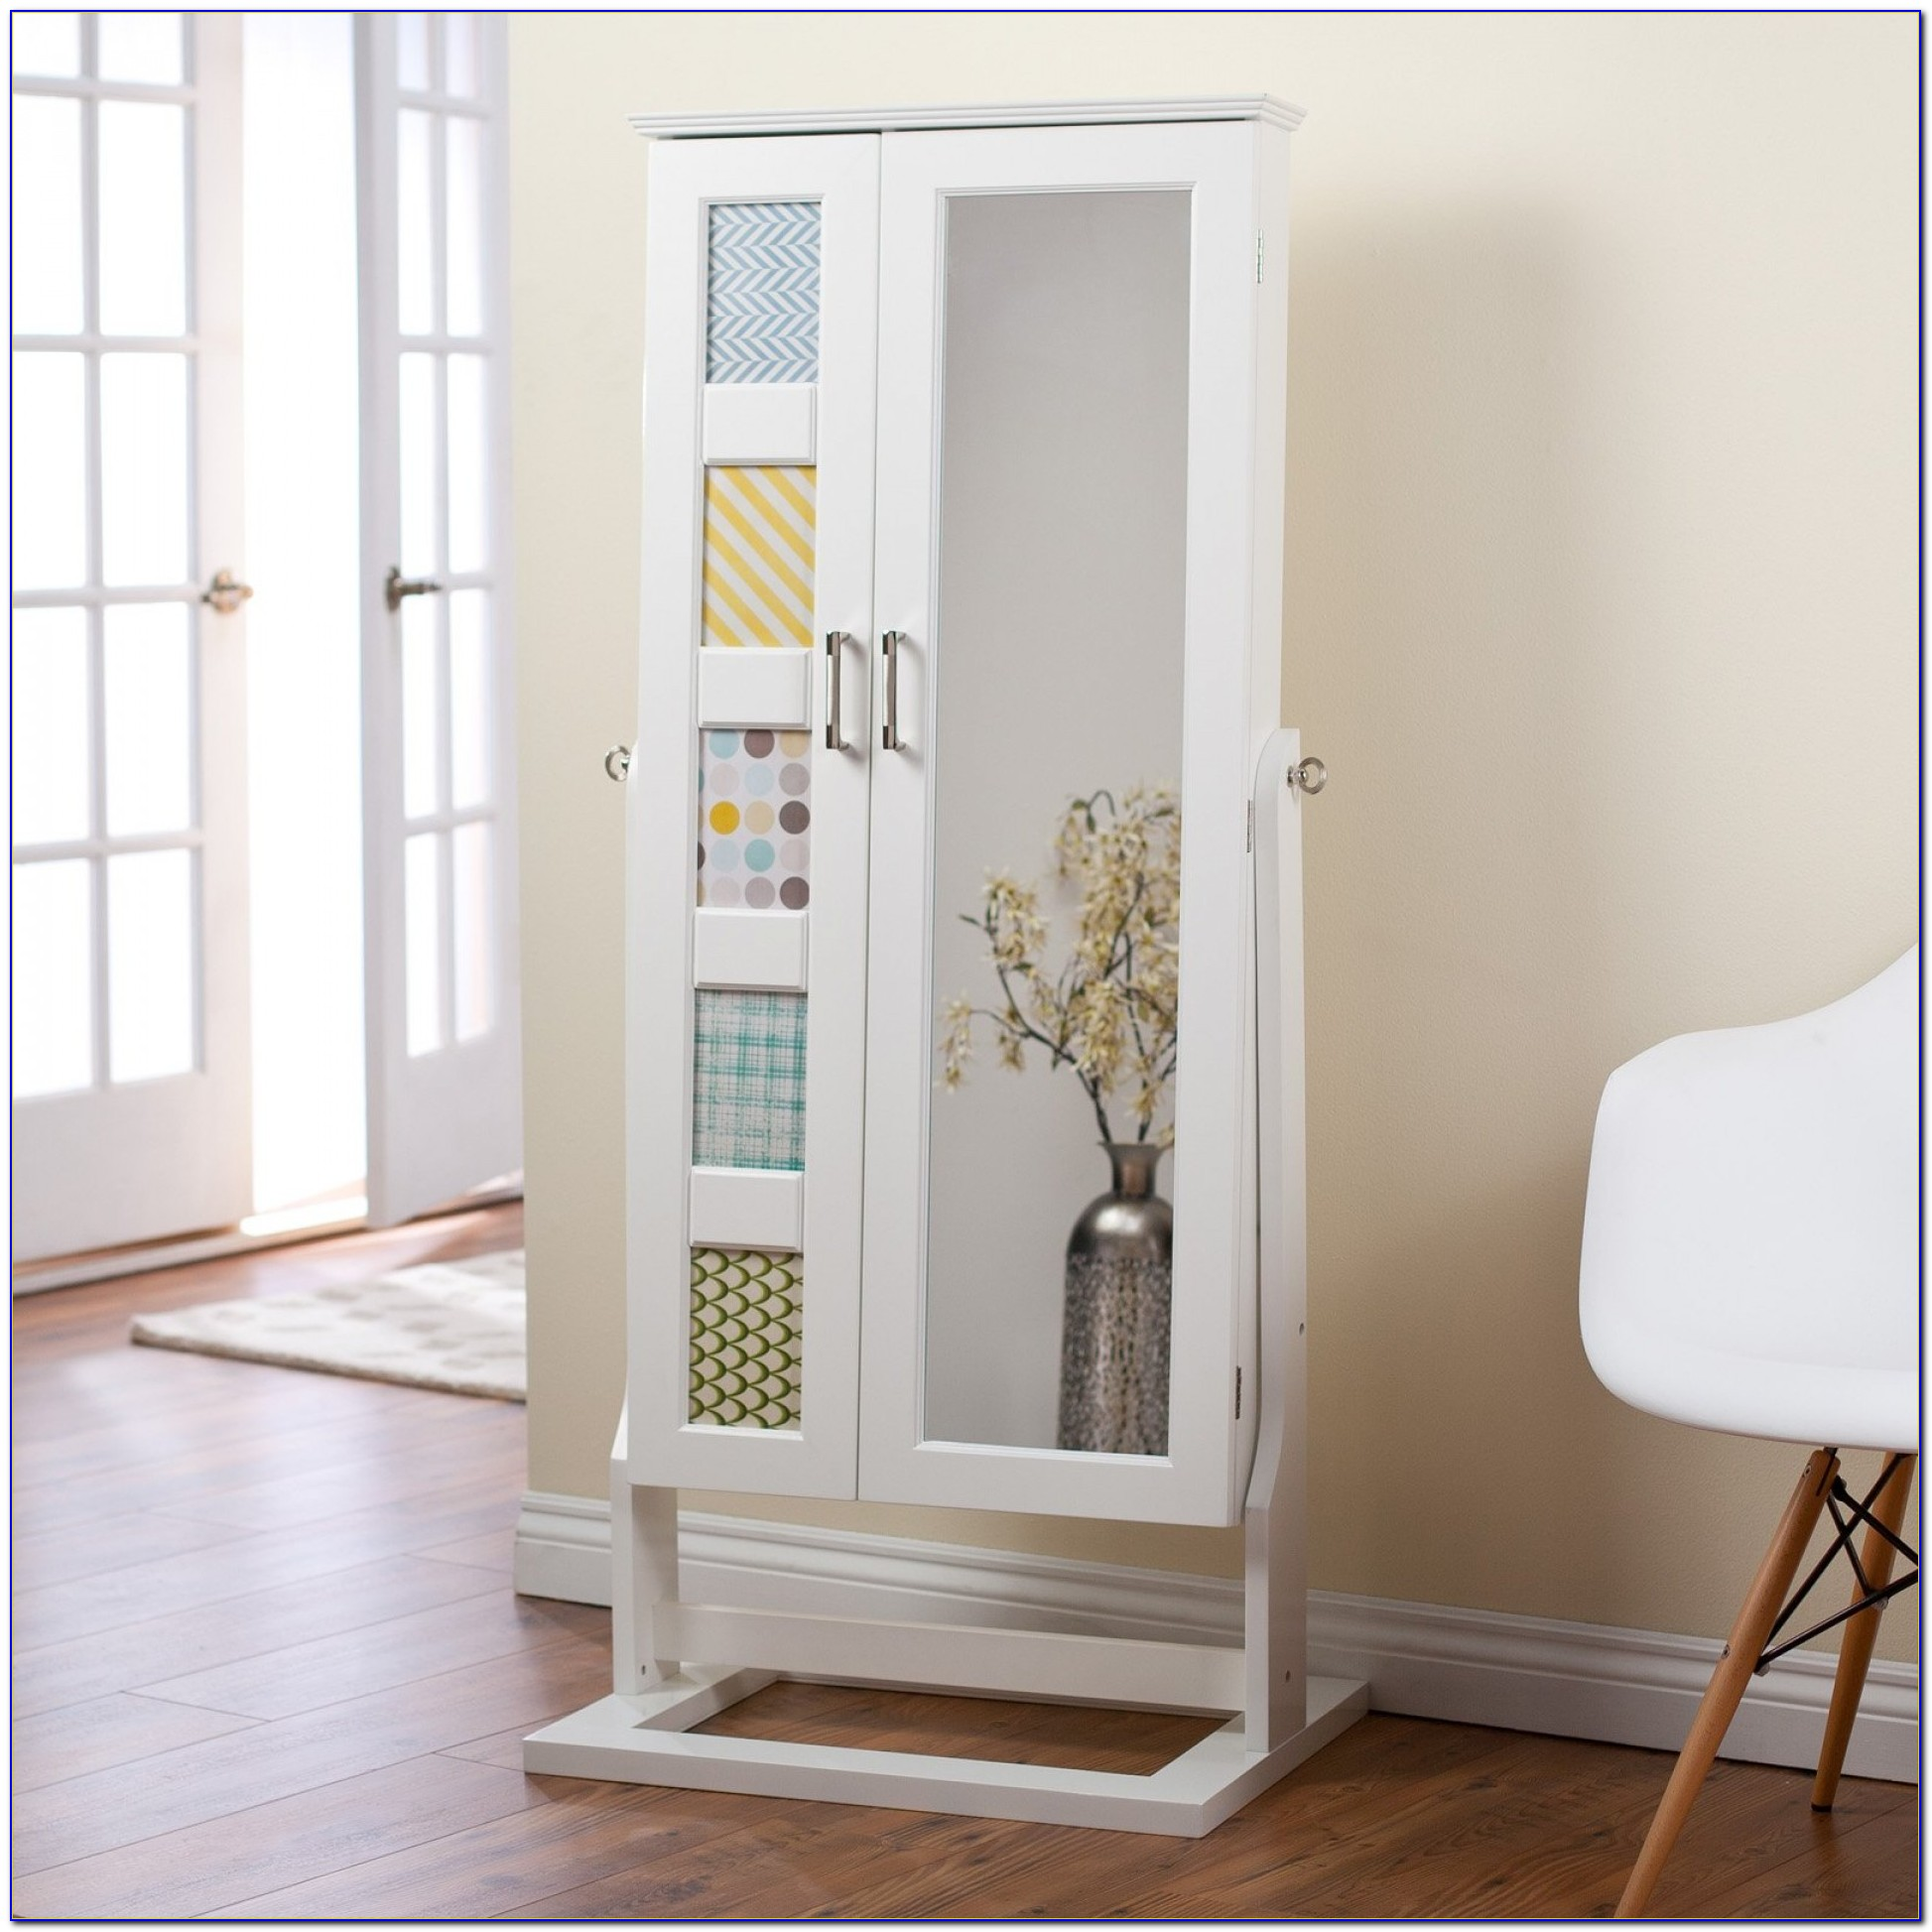 Floor Standing Bedroom Mirror & Jewellery Cabinet